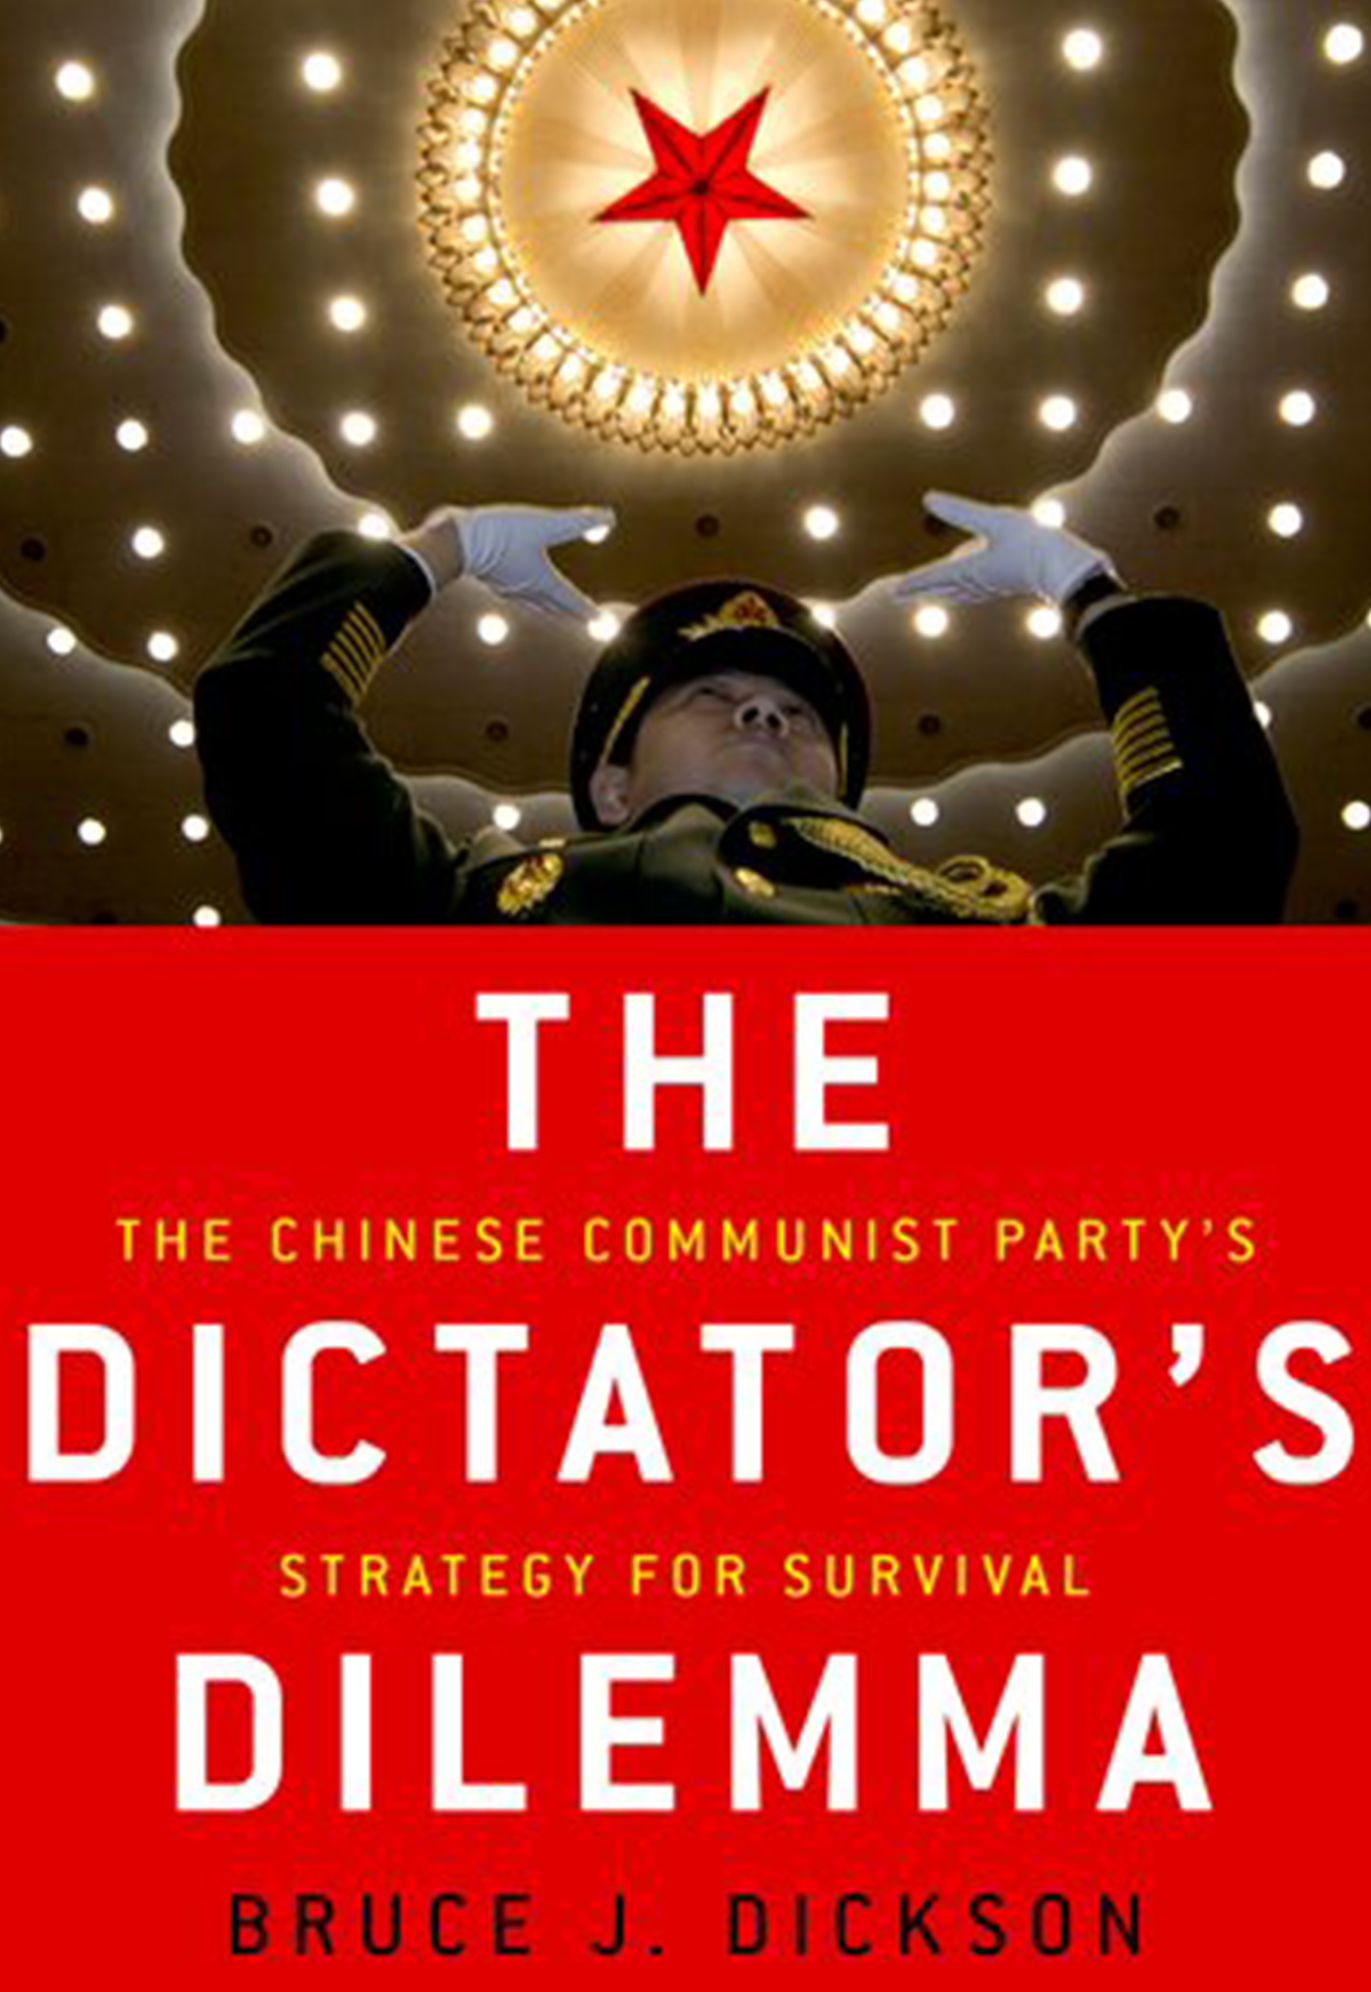 book cover: text, The Dictator's Dilemma, The Chinese Communist Party's Strategy for Survival. Bruce J. Dickson. A Chinese Army official stands with his hands raised, a ceiling with a red star and many lights is above him.